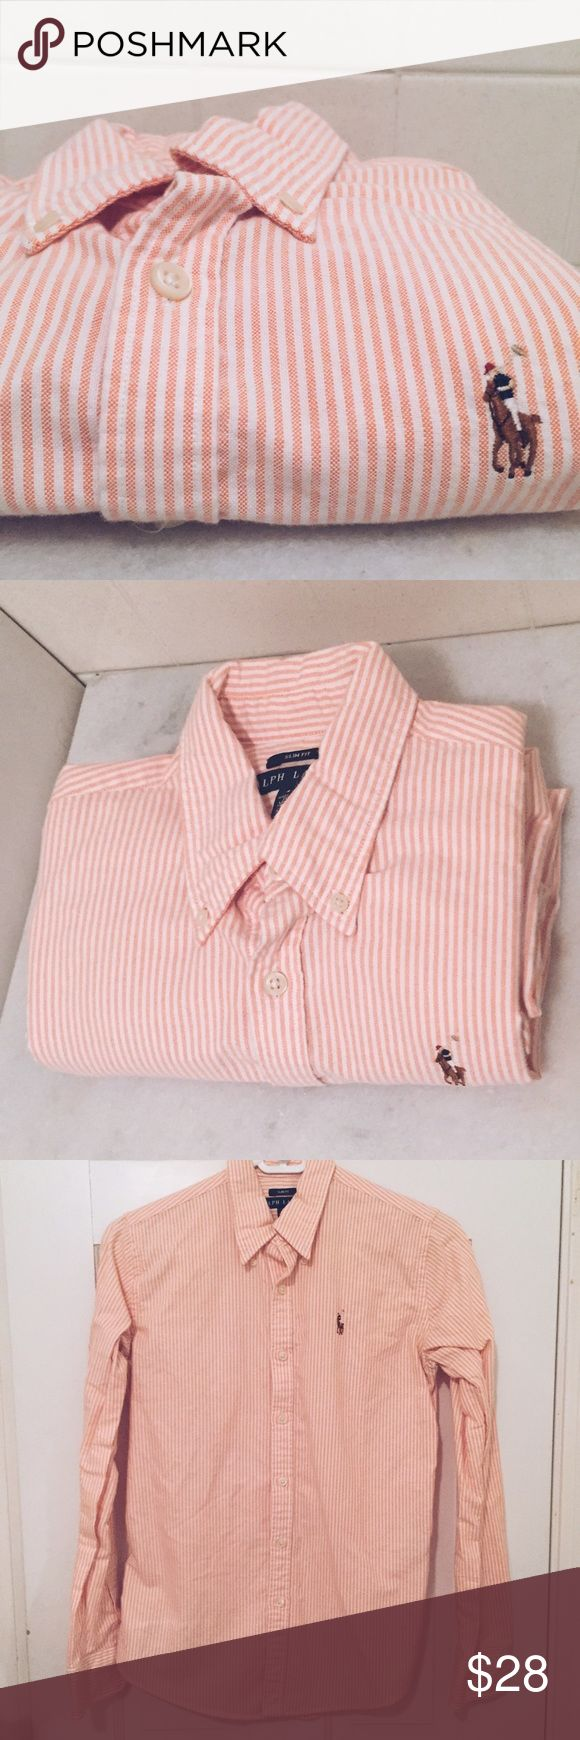 Peach and White Stripped Ralph Lauren Oxford Great peach/Orange Ralph Lauren button down. Only worn a couple of times. In great condition. Ralph Lauren Tops Button Down Shirts